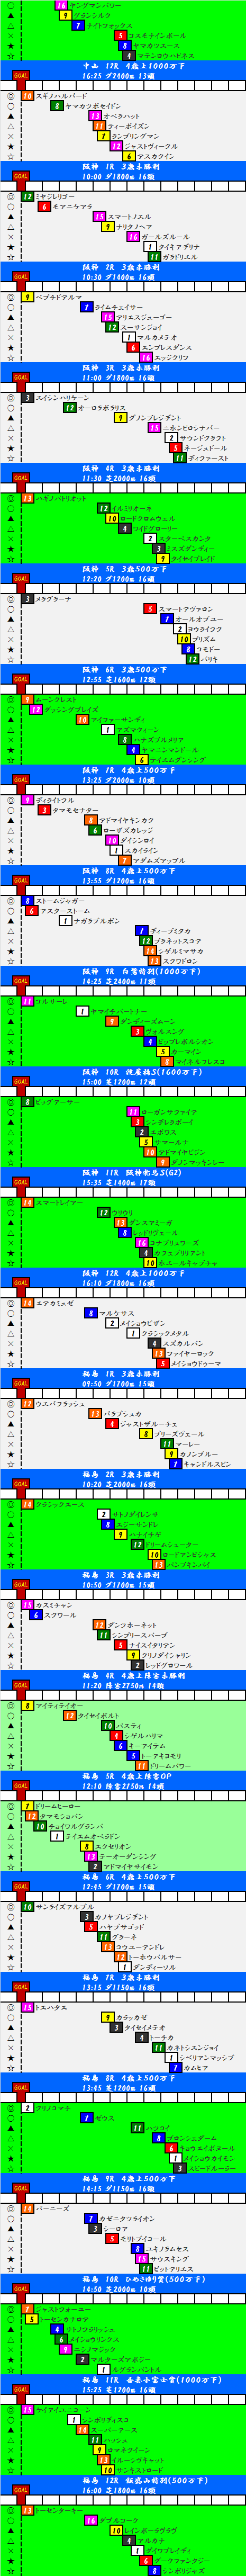 2015041102.png